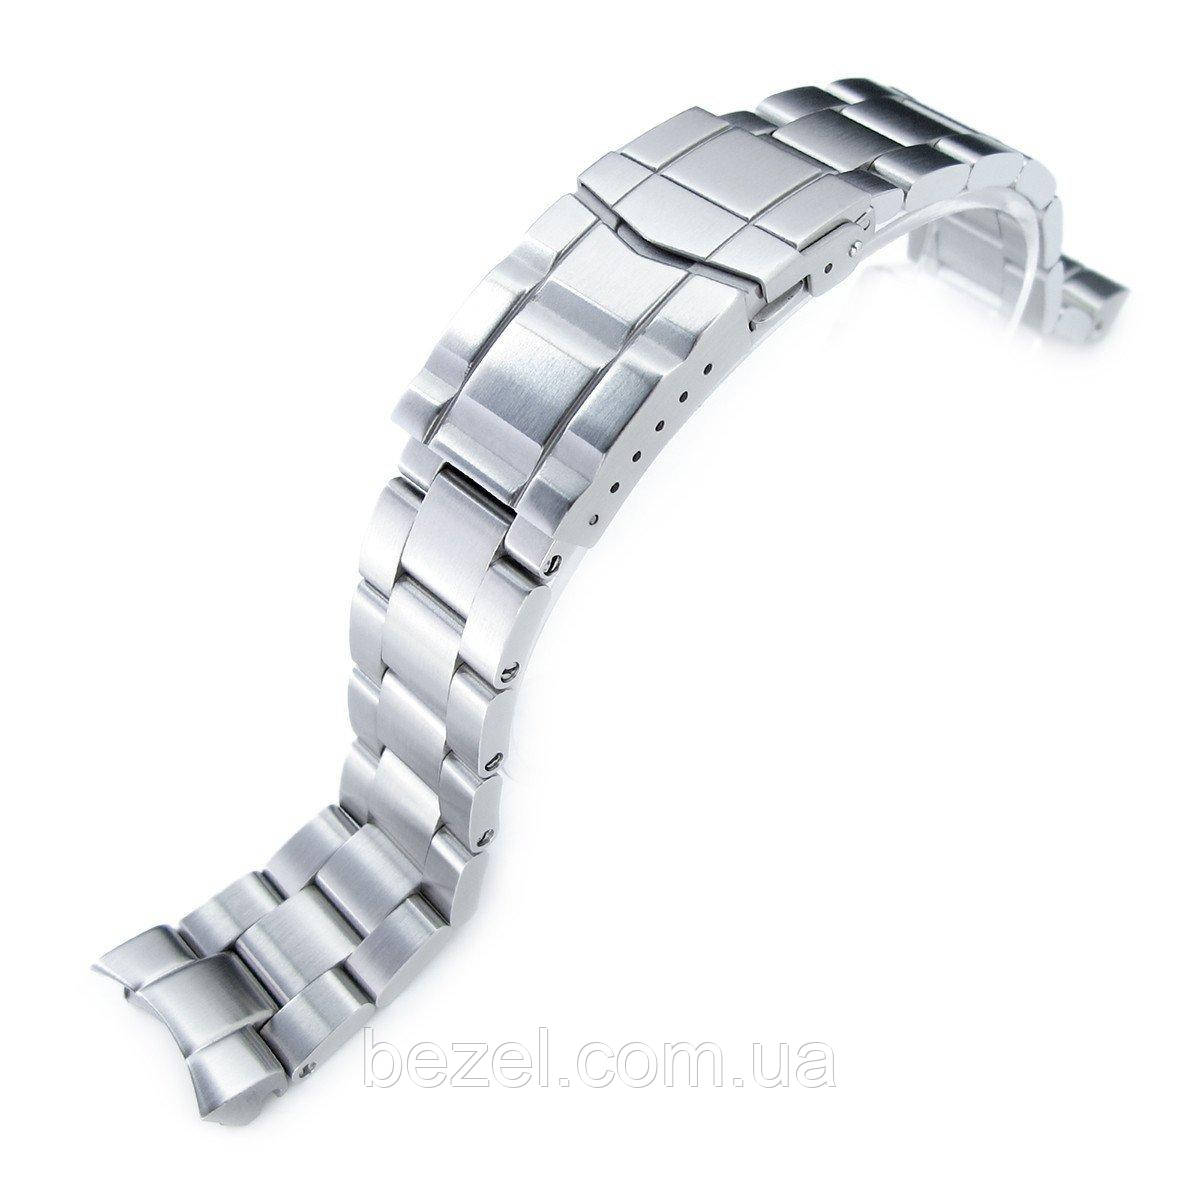 20mm Super Oyster Watch Bracelet for Seiko SKX013, Brushed 316L Stainless Steel, Sub-Clasp